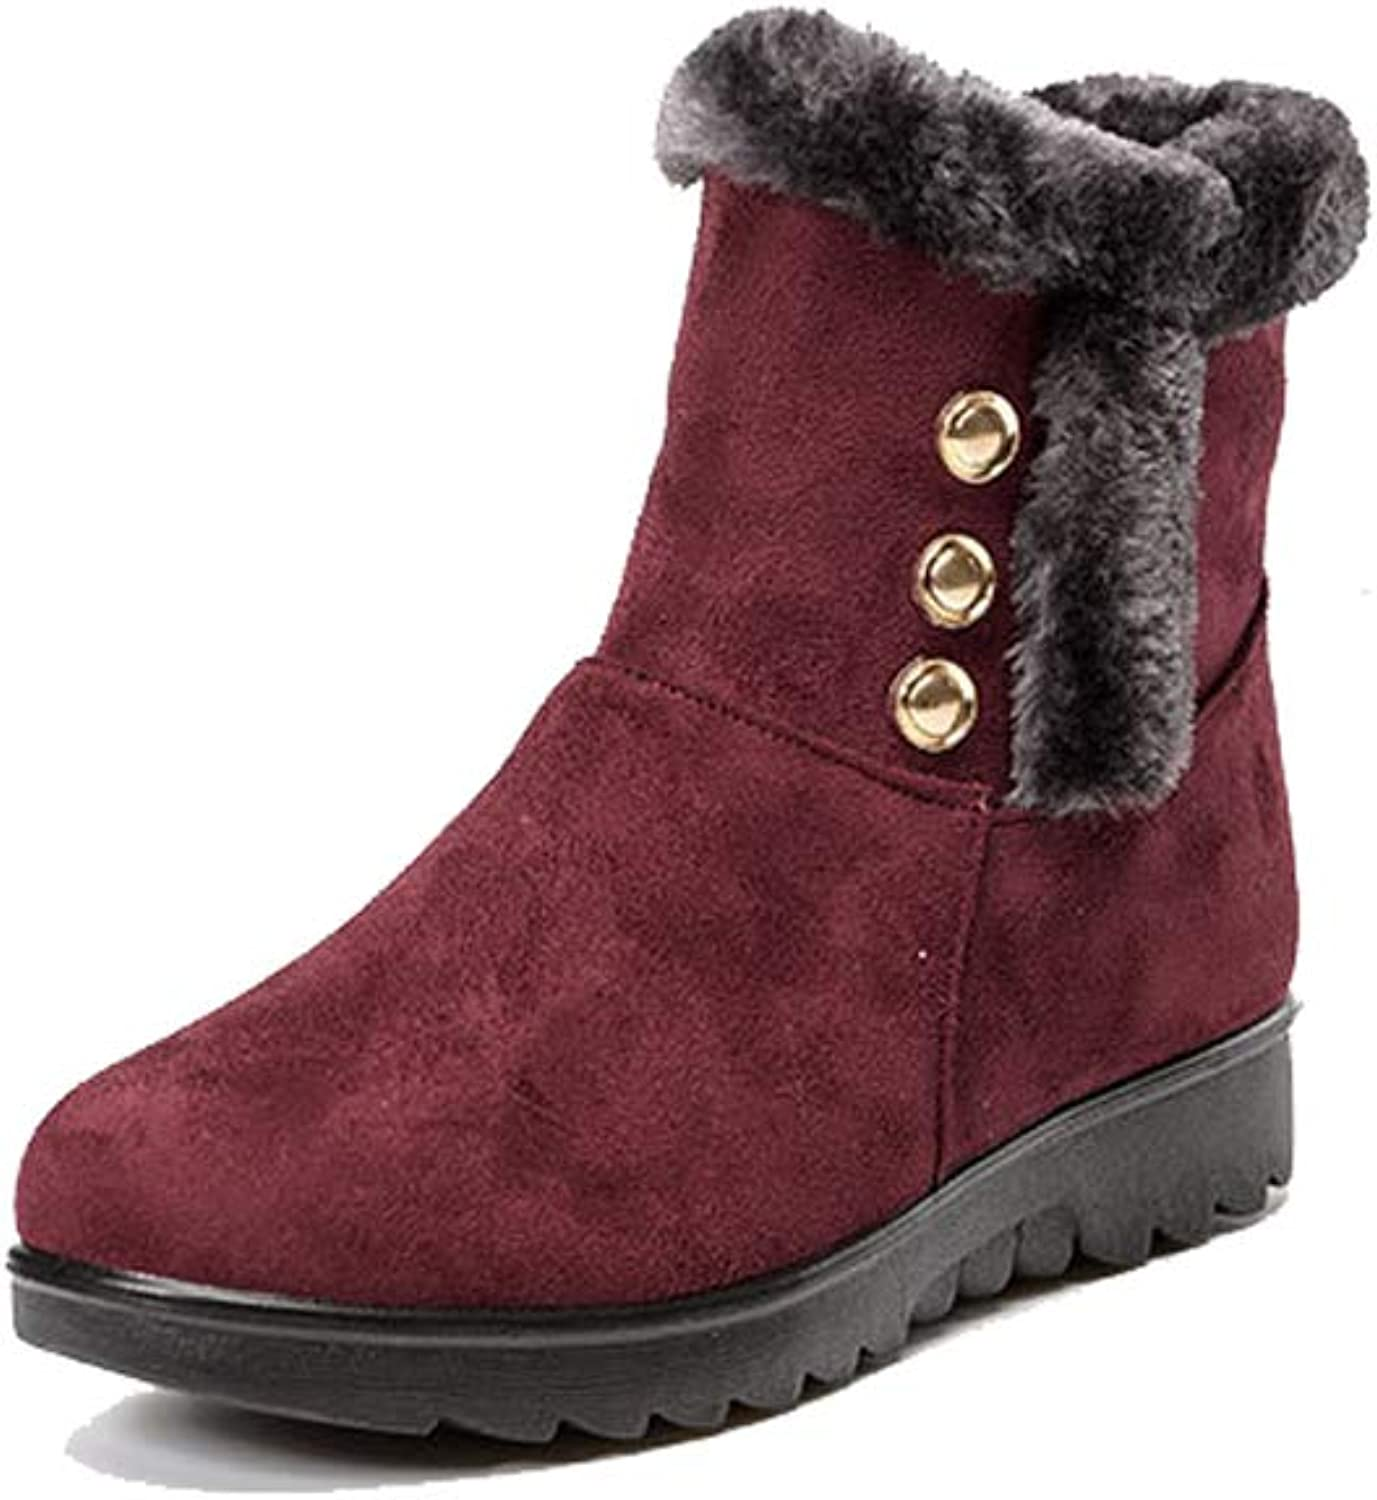 Believed Fashion Cute Autumn Winter Boots shoes for Women Short Round Toe Solid Ankle Boots